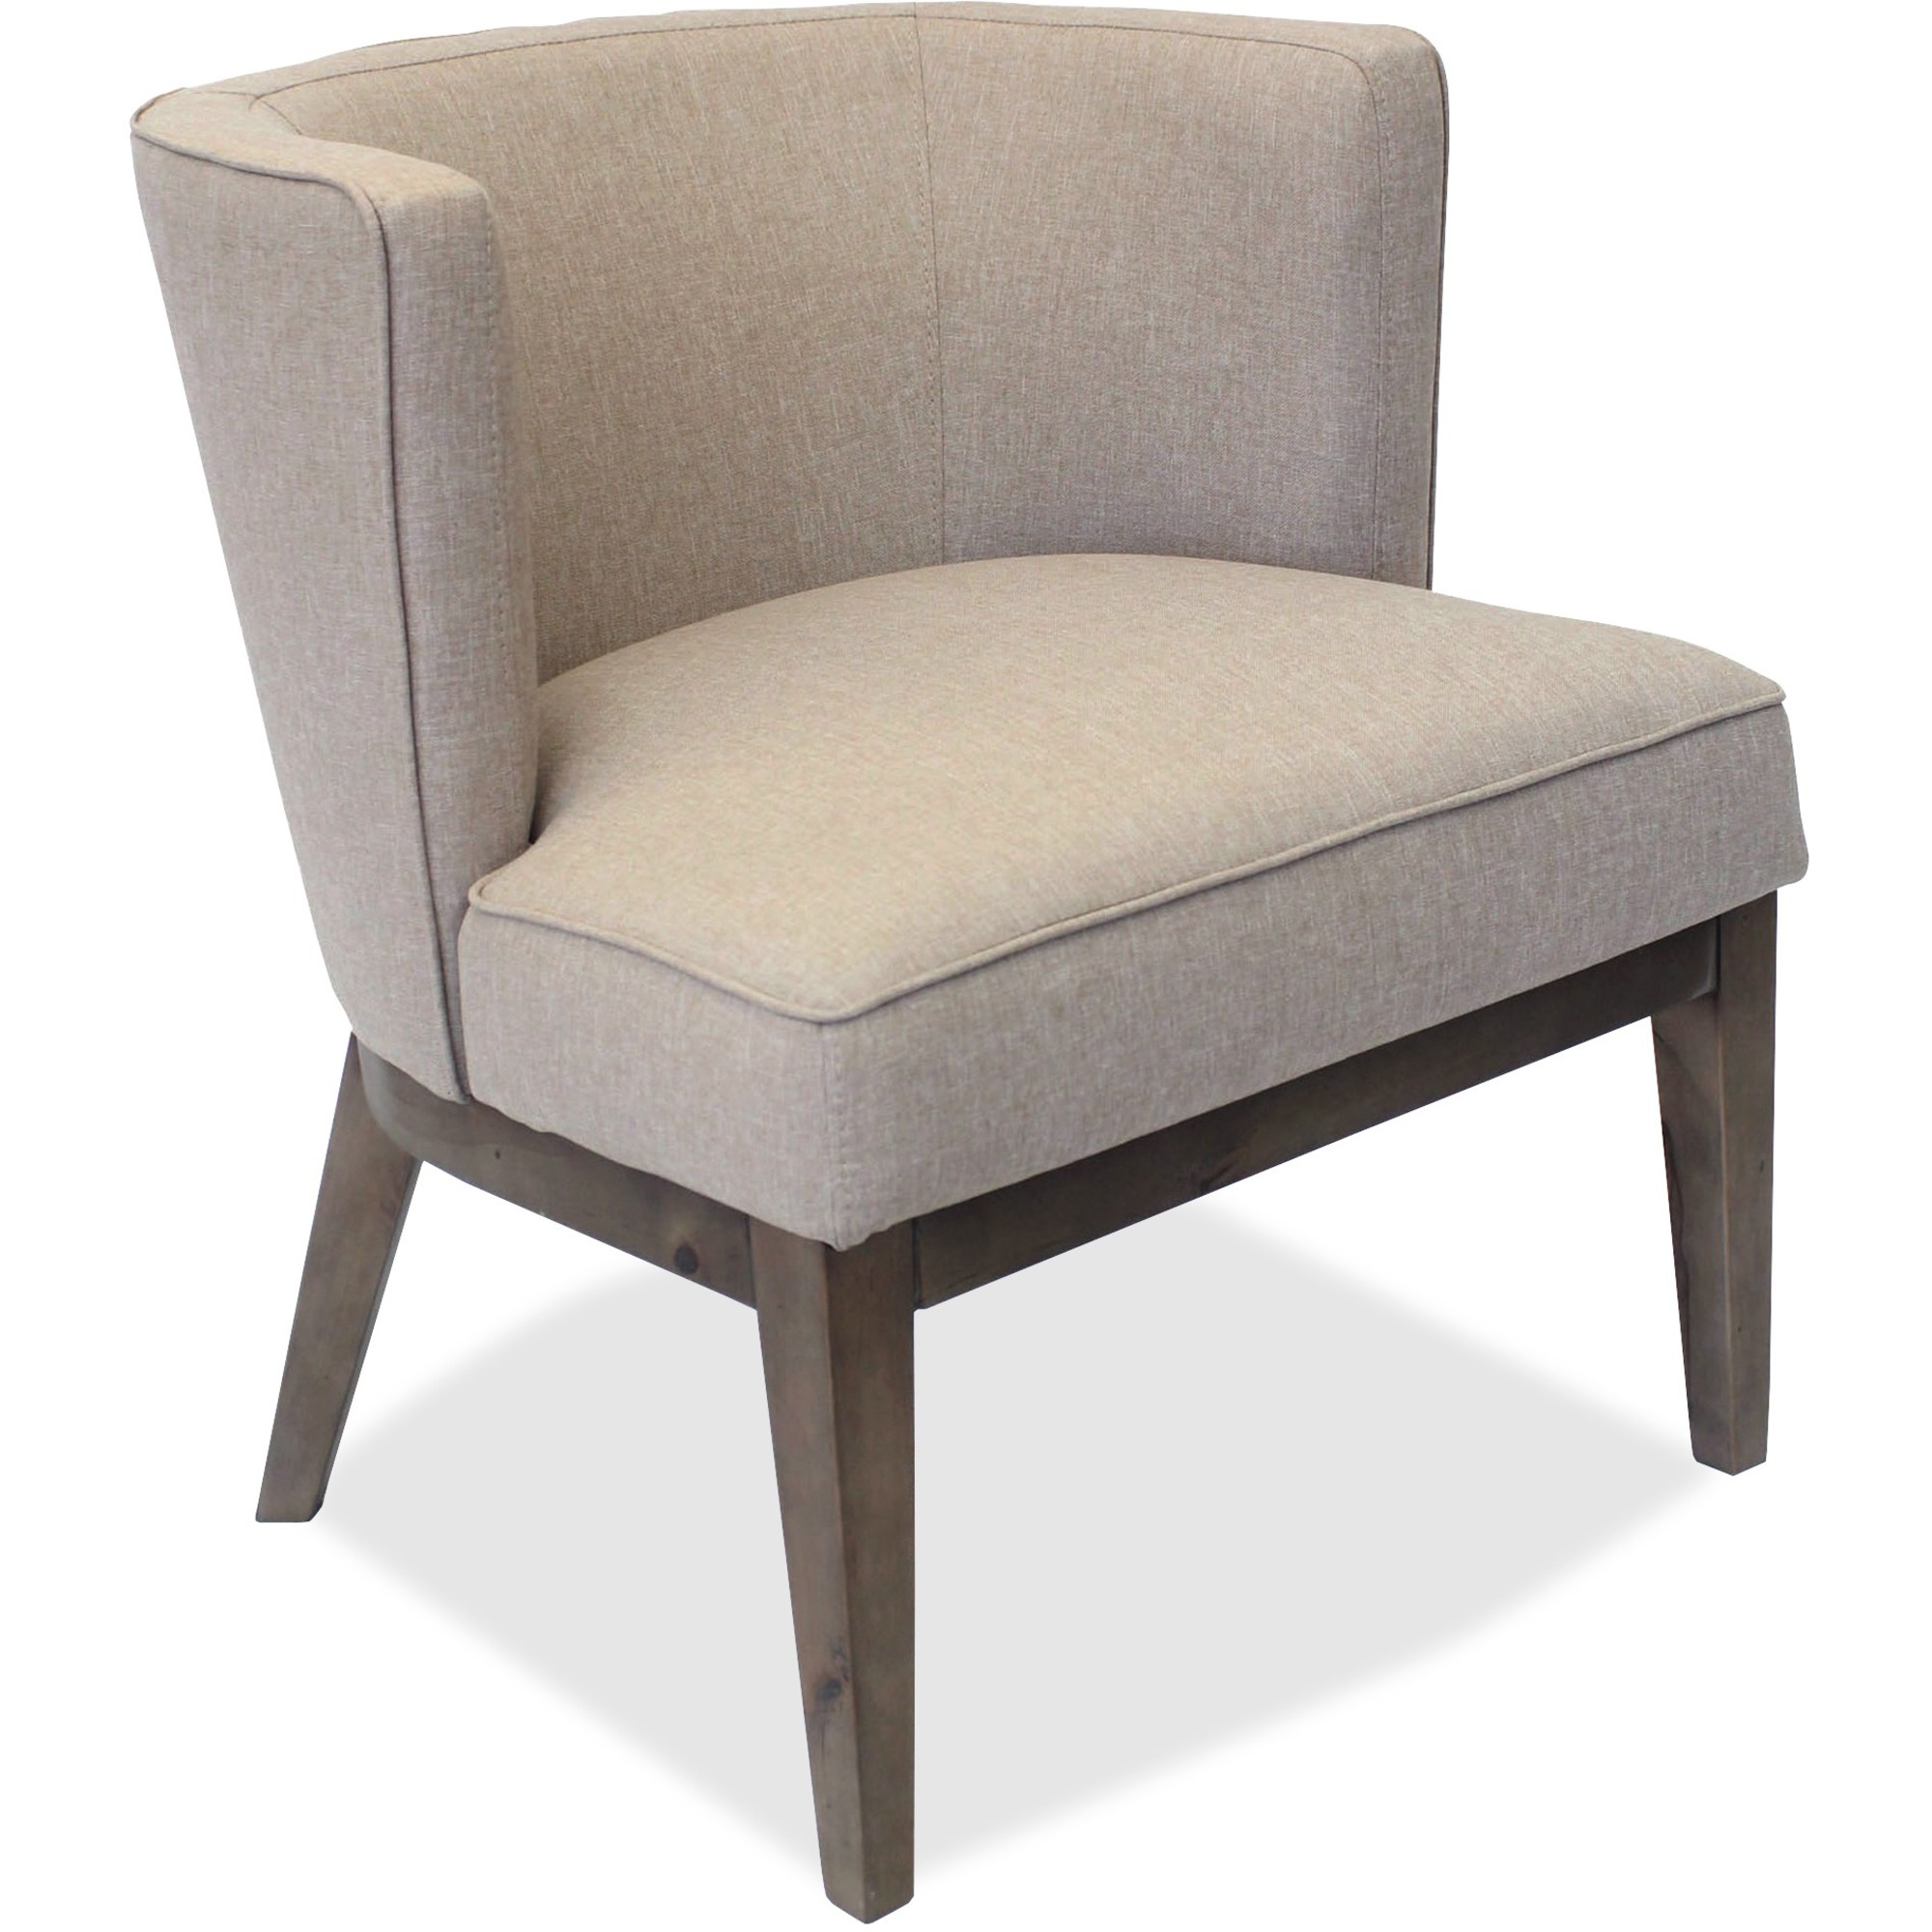 Astounding Lorell Linen Fabric Accent Chair Wood Walnut Frame Four Legged Base Beige Linen 25 50 Seat Width X 21 Seat Depth 25 5 Width X 29 Depth X Squirreltailoven Fun Painted Chair Ideas Images Squirreltailovenorg